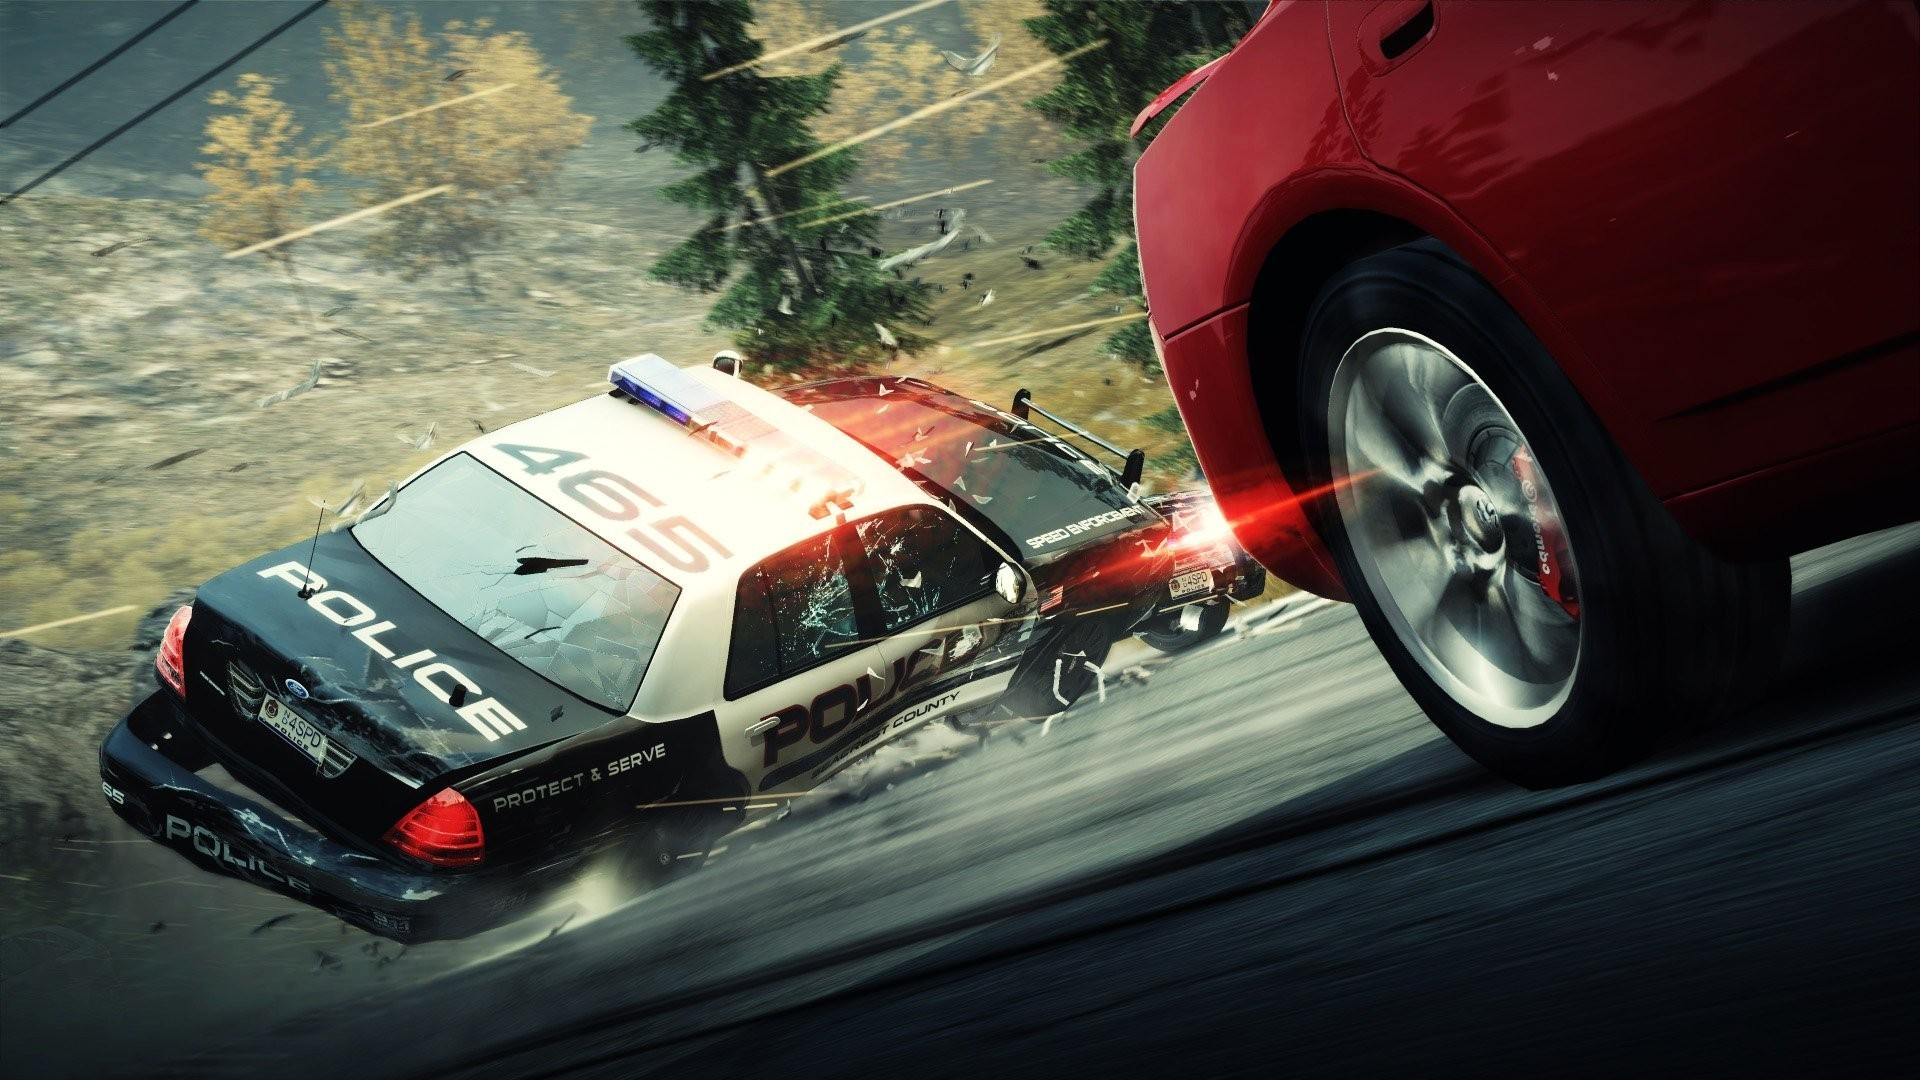 1920x1080 car, Video Games, Need For Speed: Hot Pursuit, Police Cars Wallpapers HD /  Desktop and Mobile Backgrounds